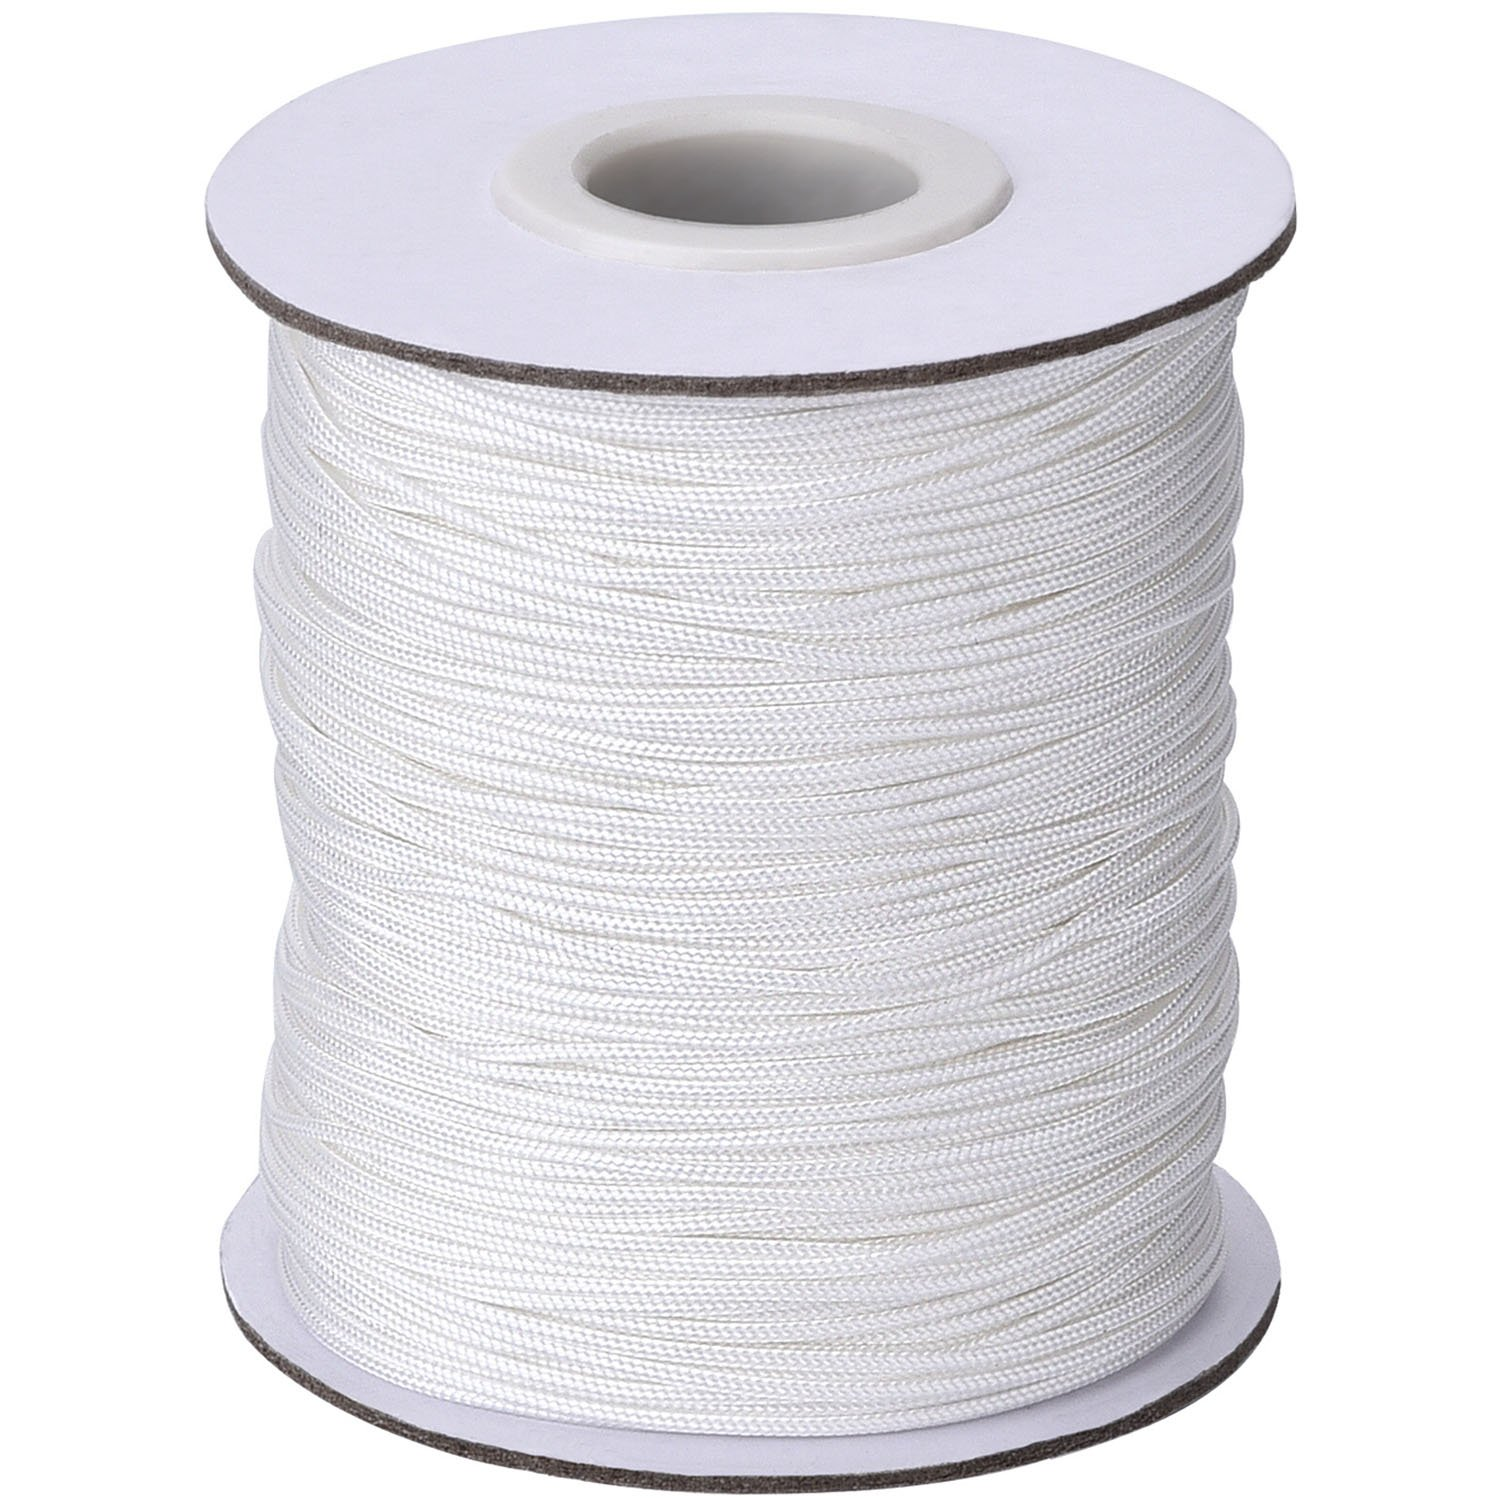 Outus 109 Yards/Roll White Braided Lift Shade Cord for Aluminum Blind Shade, Gardening Plant and Crafts (1.0 mm) 4337027909